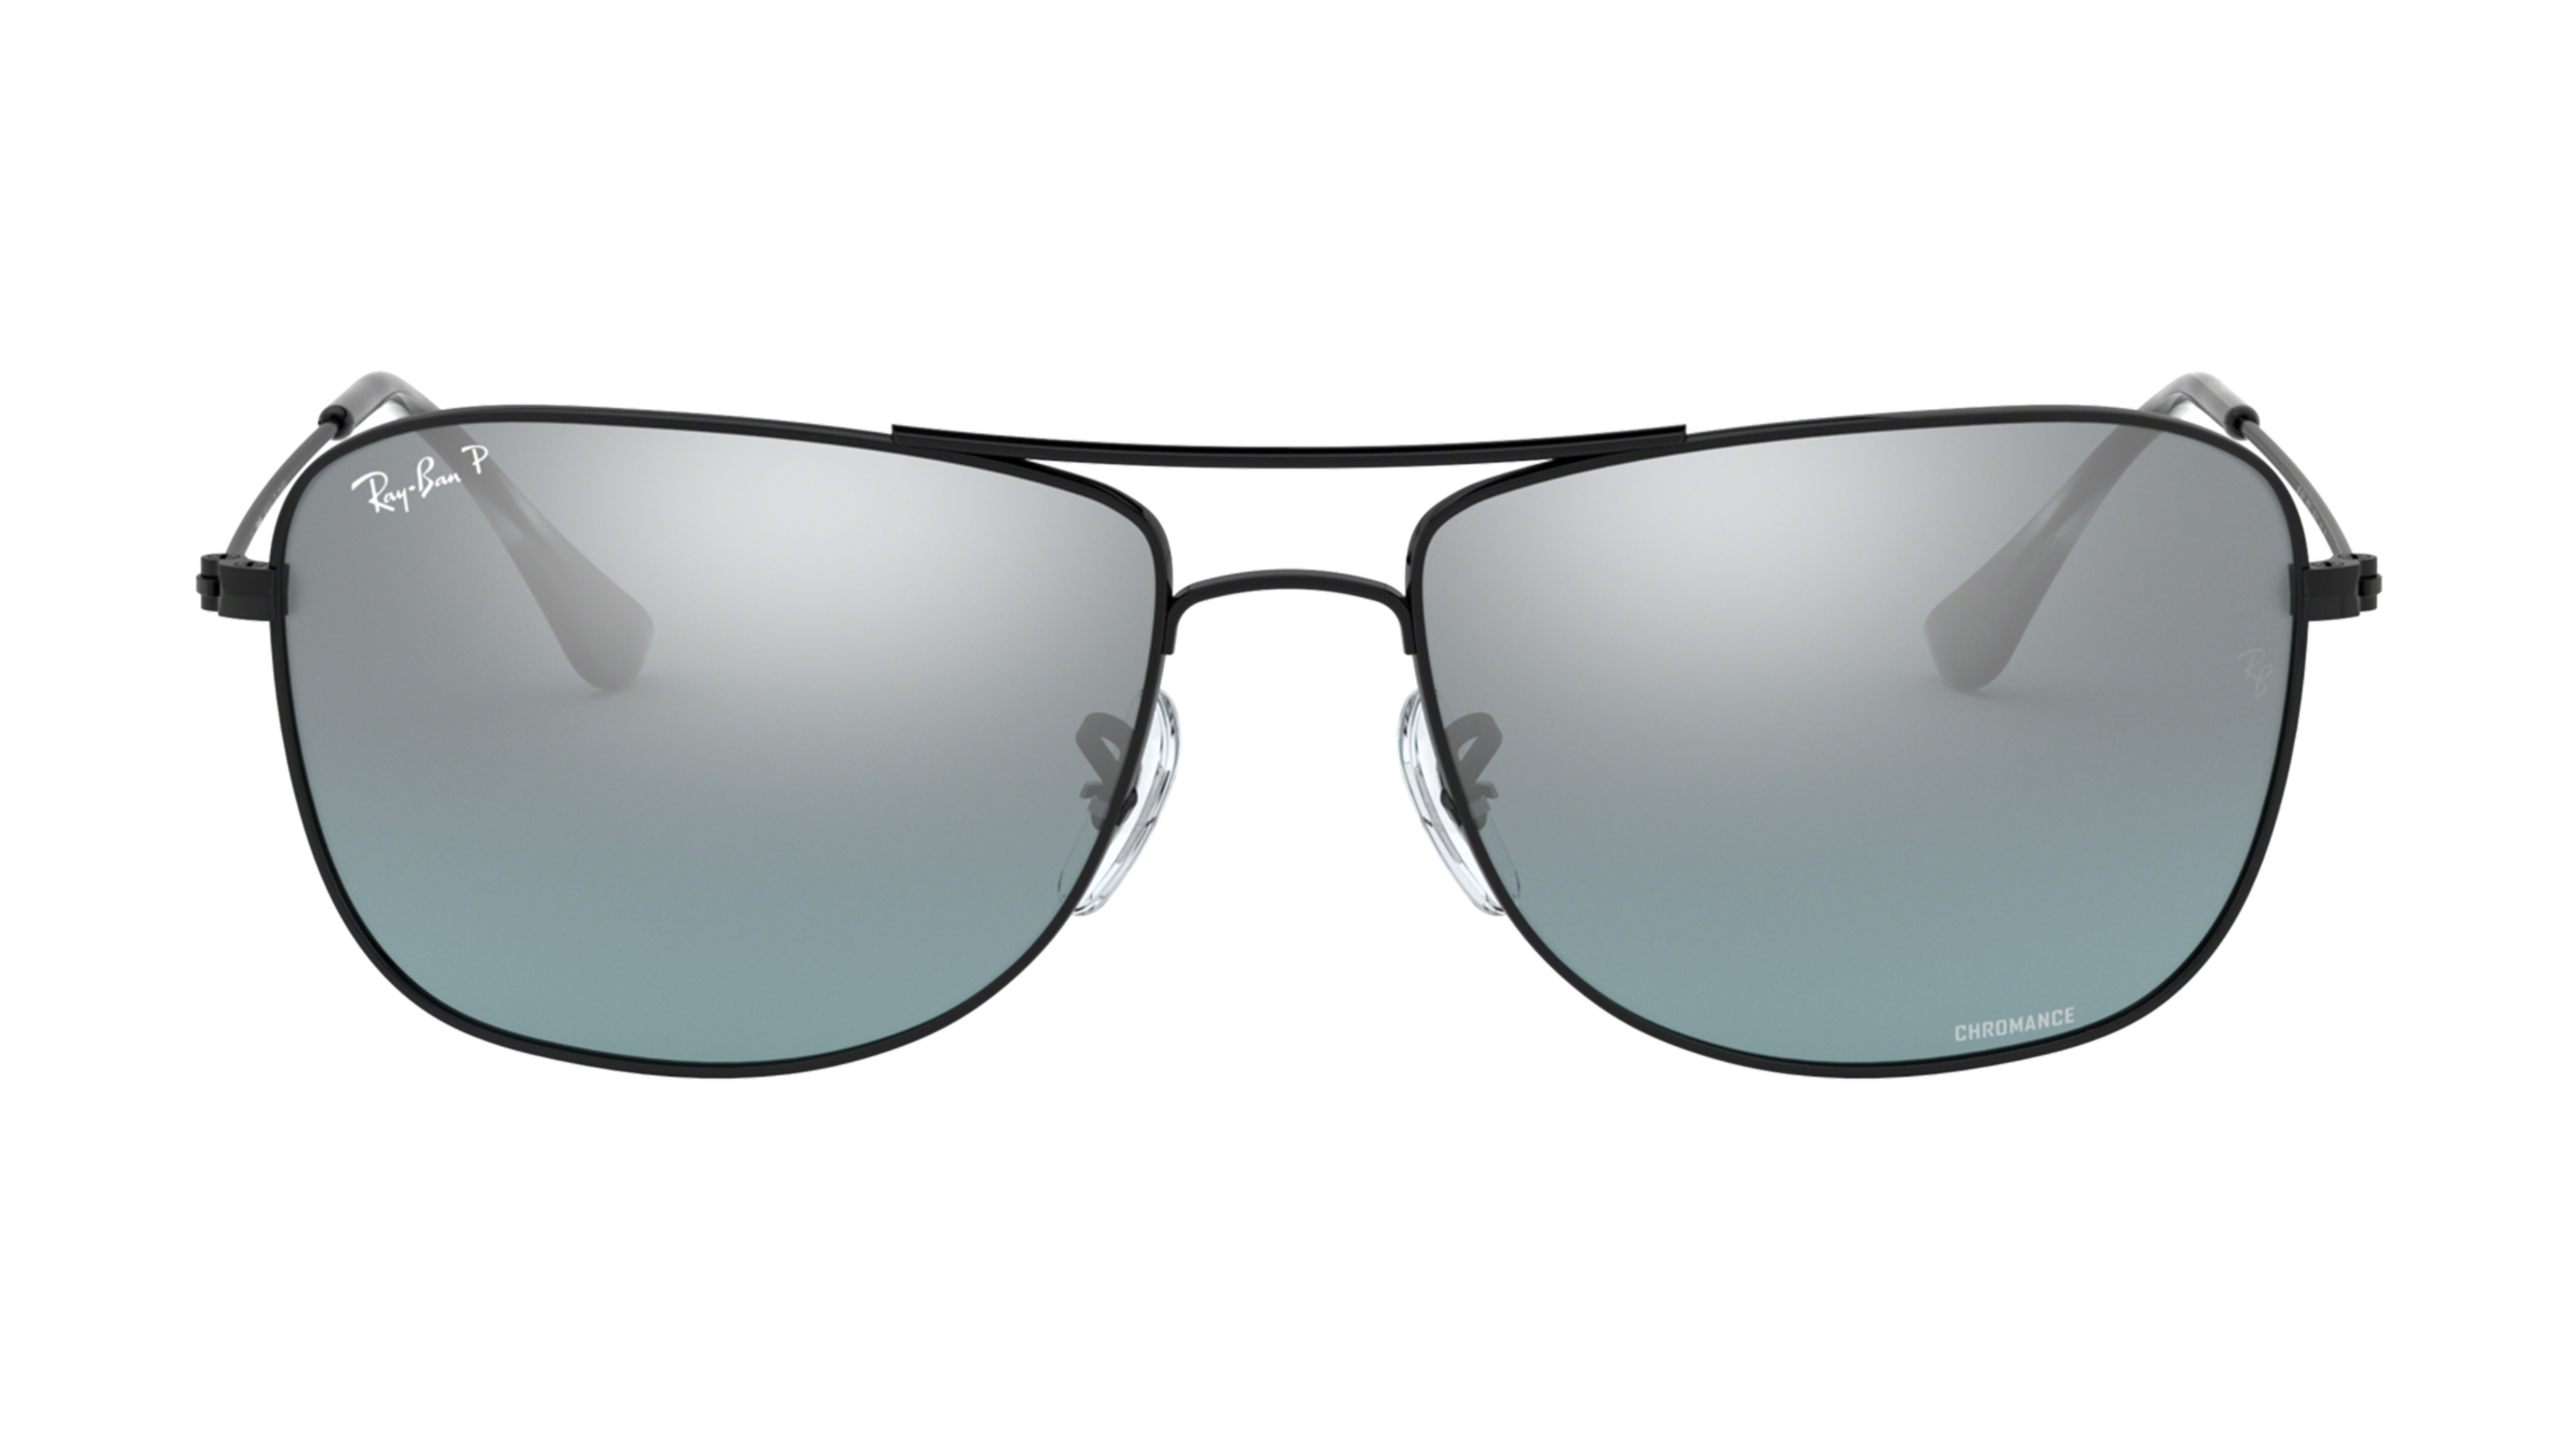 8056597035996-front-Ray-Ban-0RB3543-002-5L